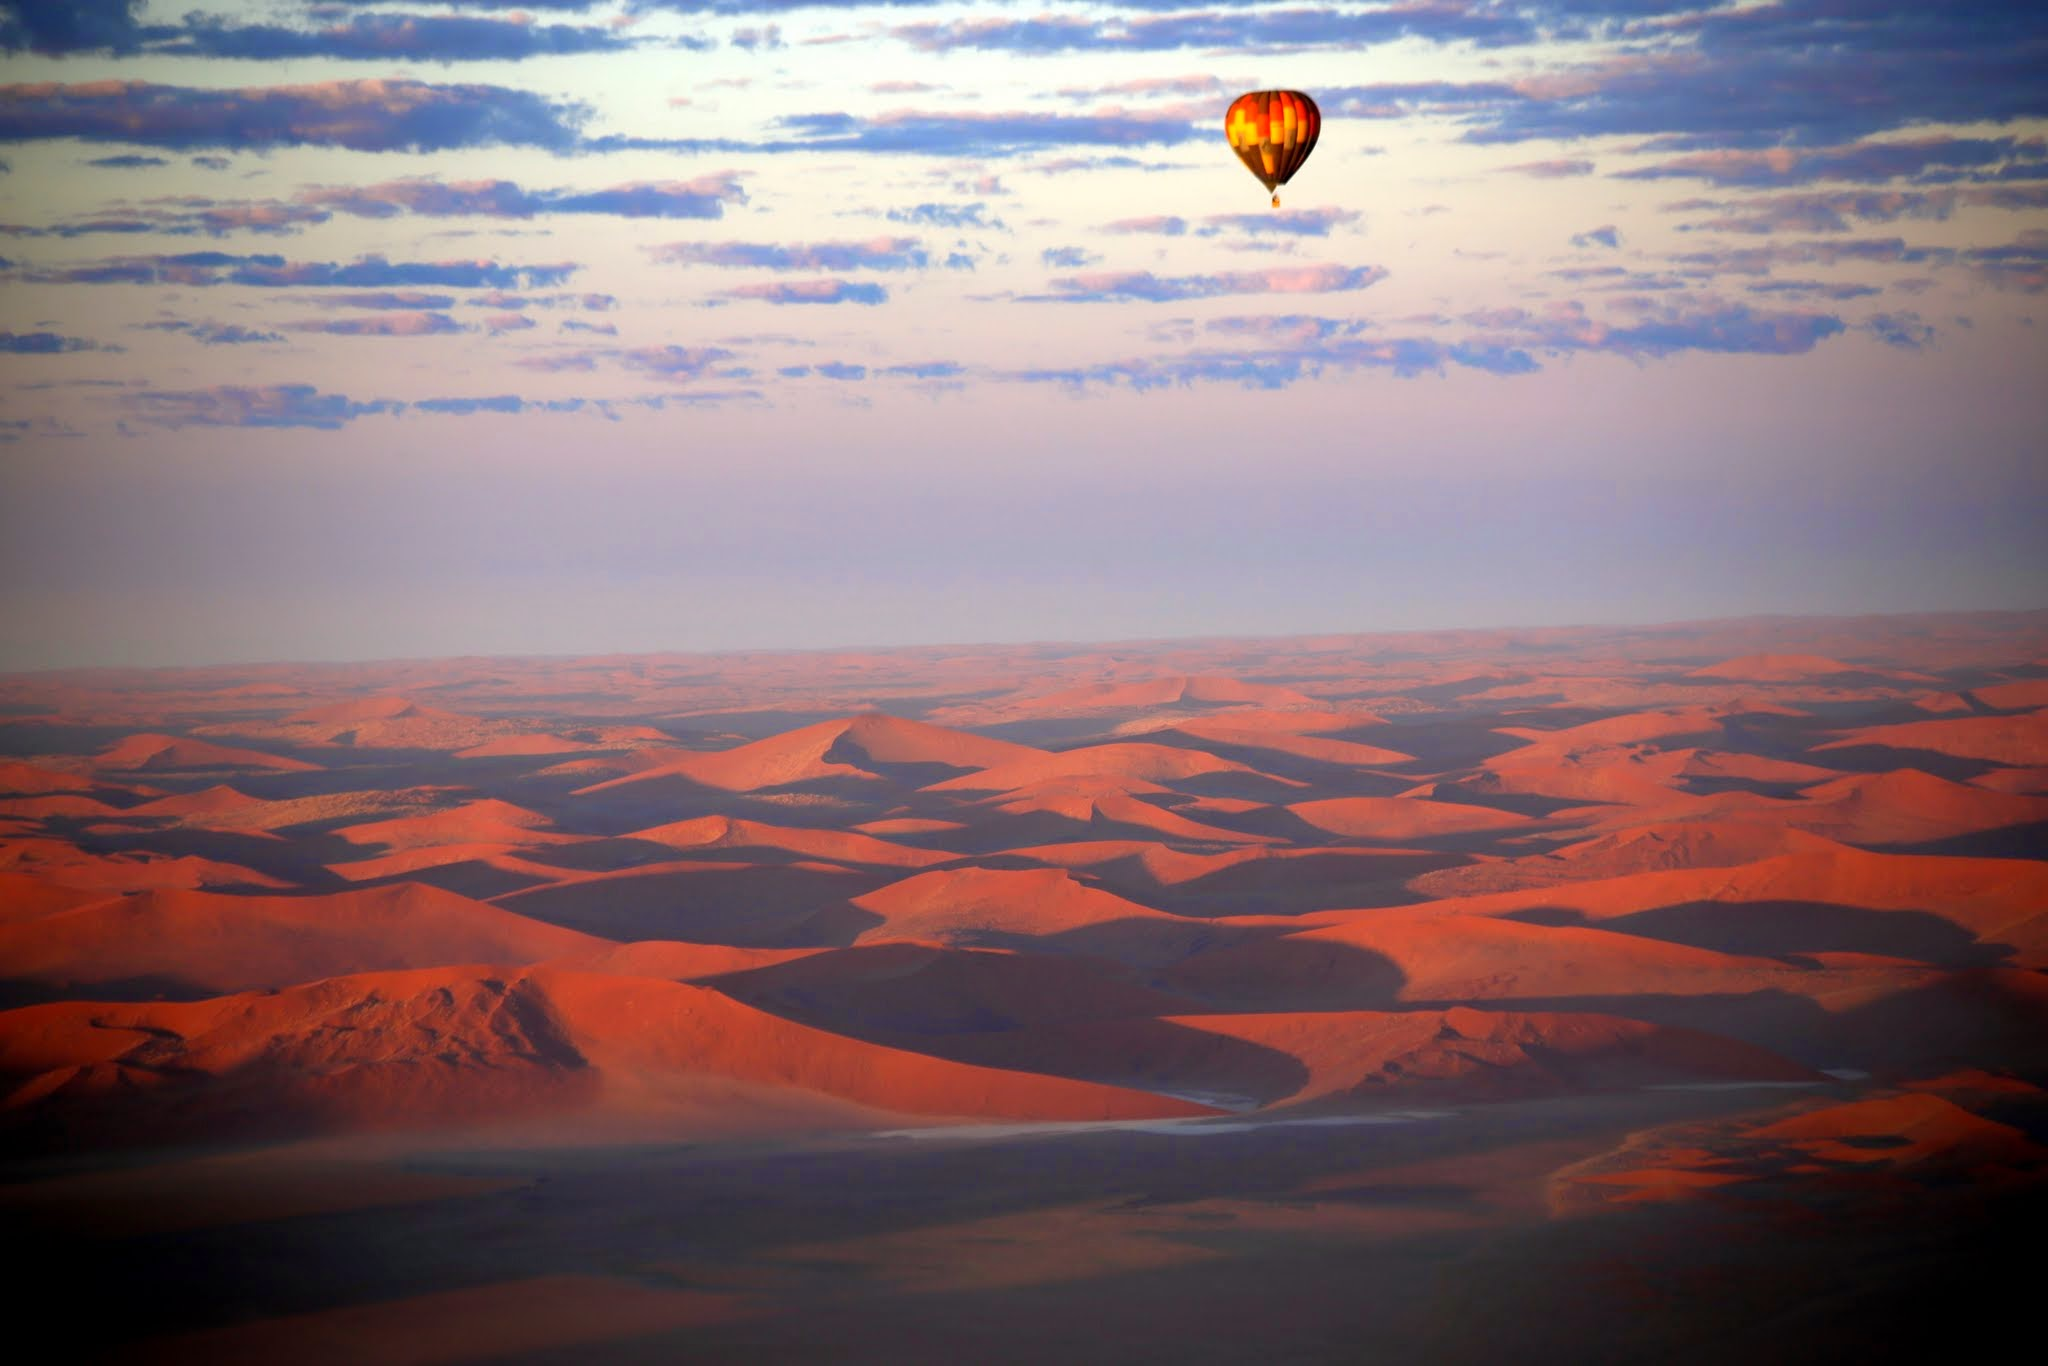 baloon ride over desert